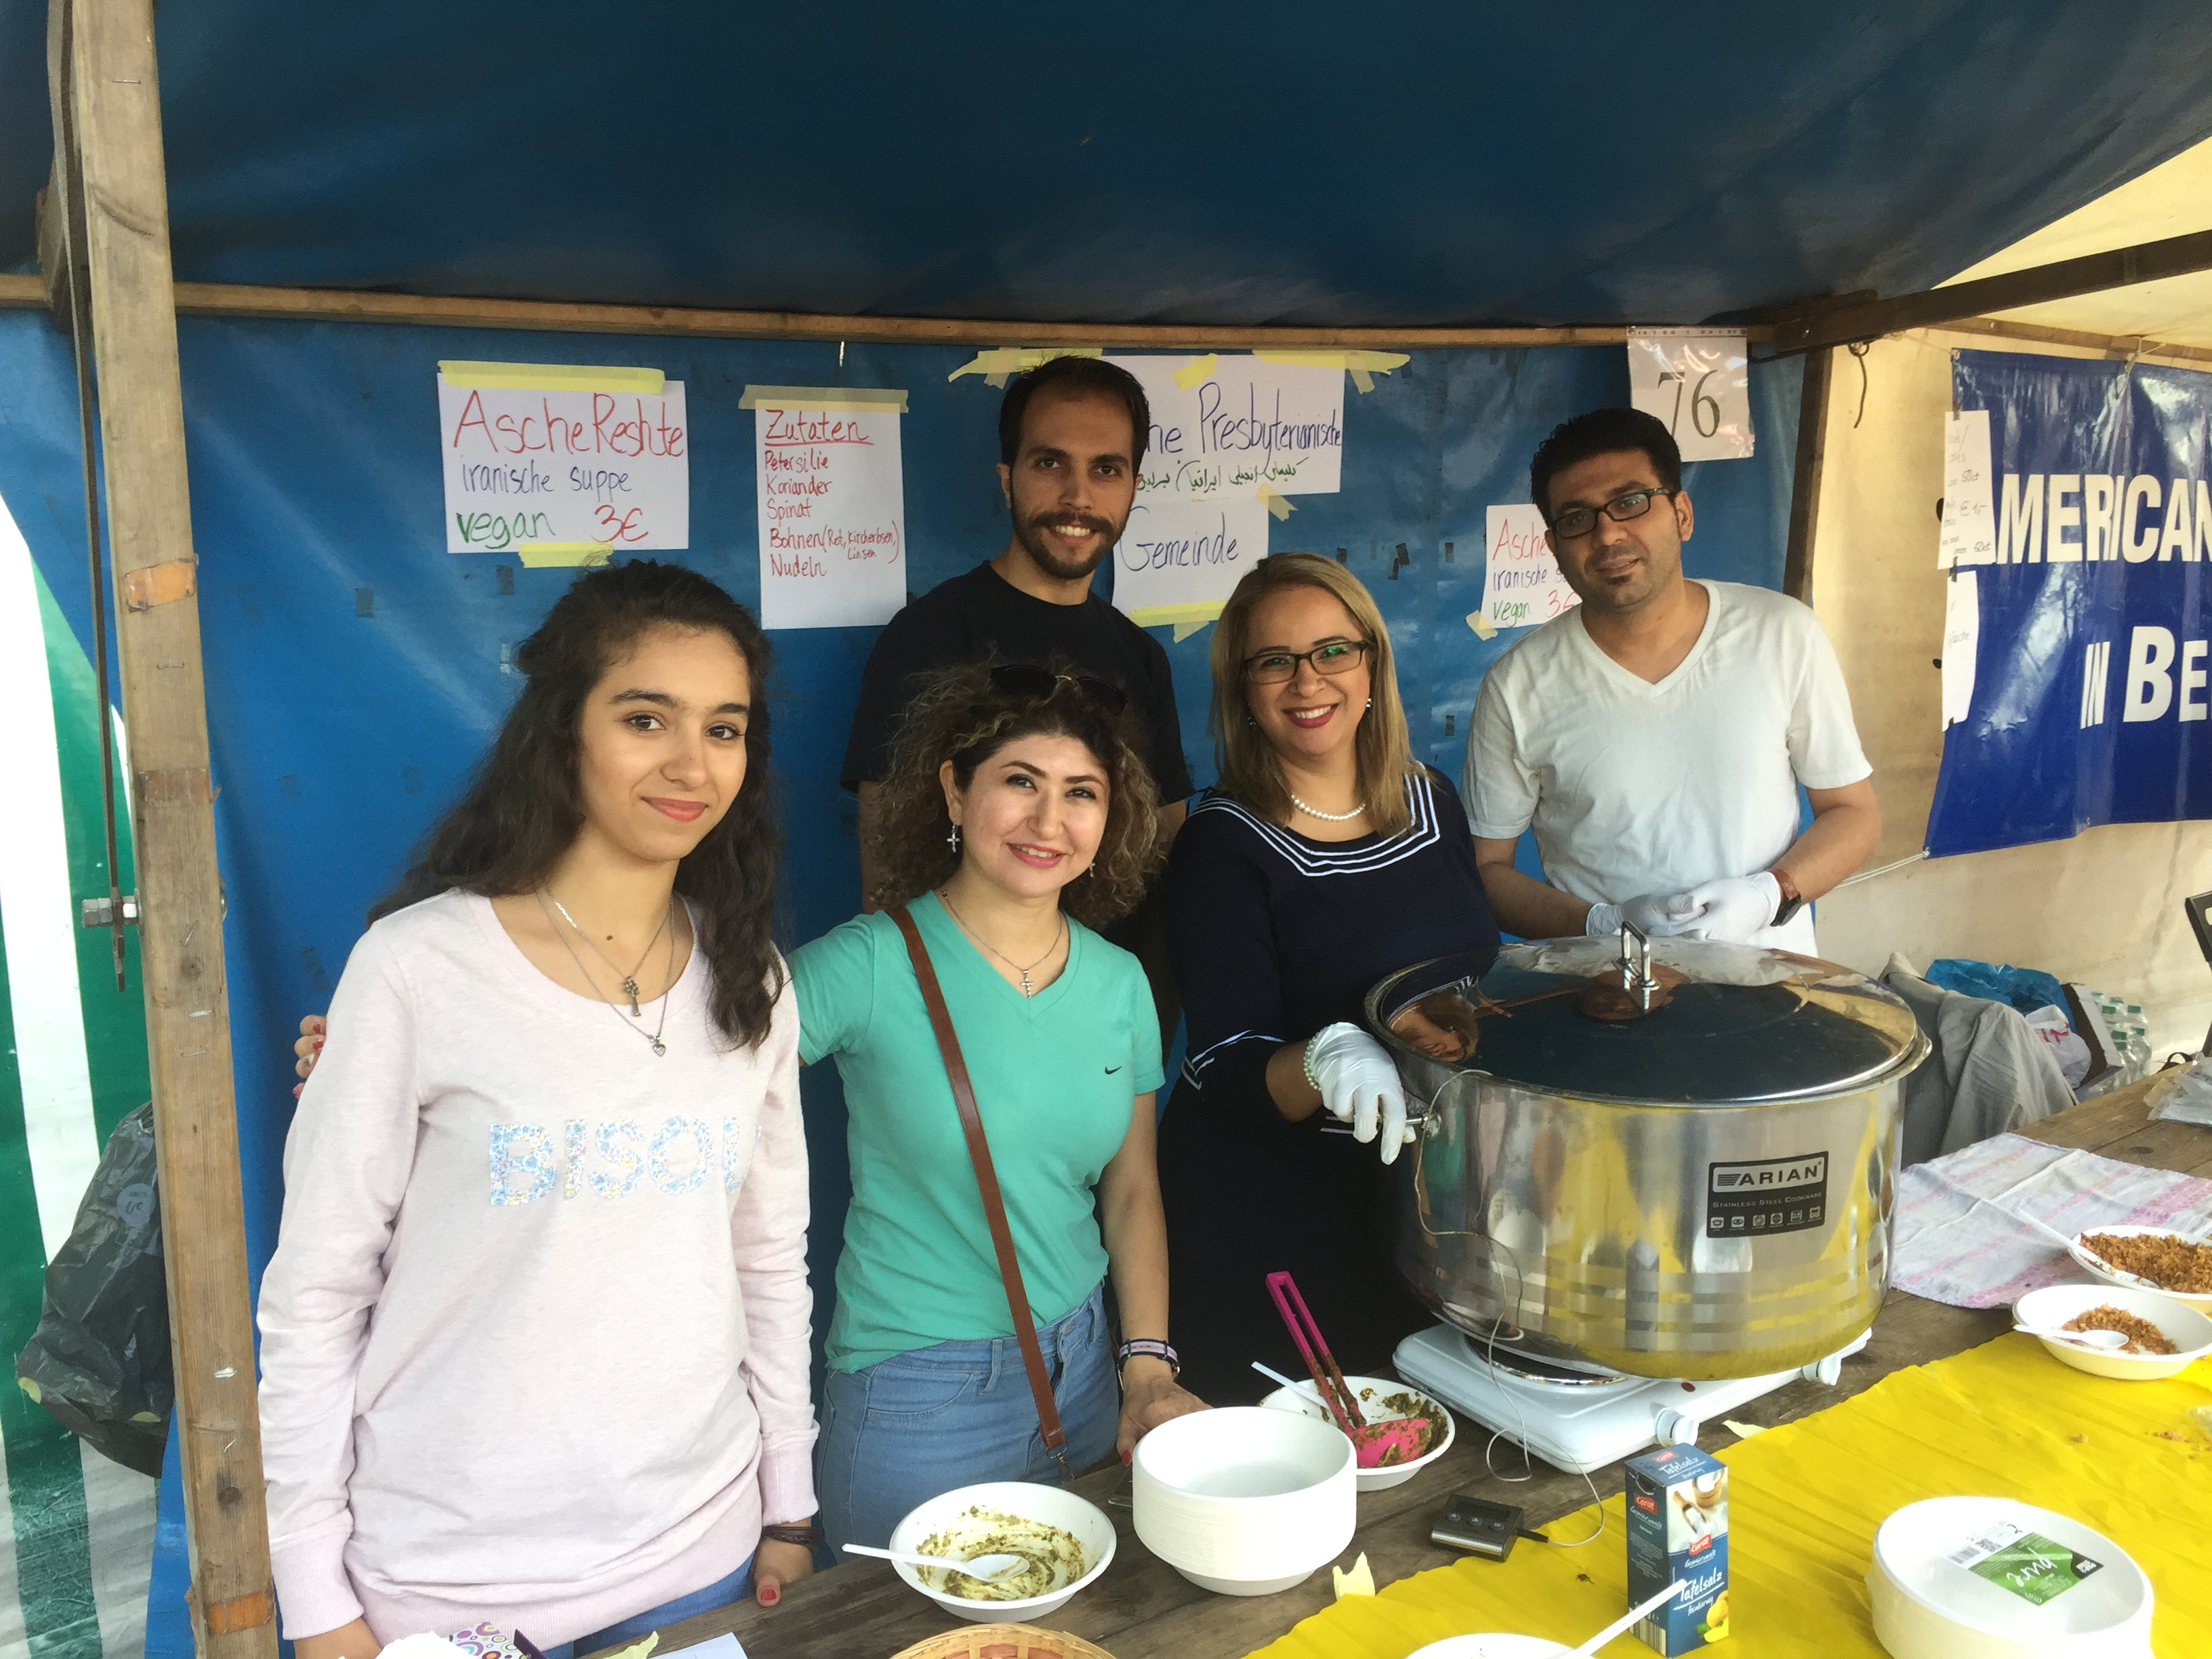 More volunteers at the Iranian Presbyterian Church food booth at the Fest der Kirchen.